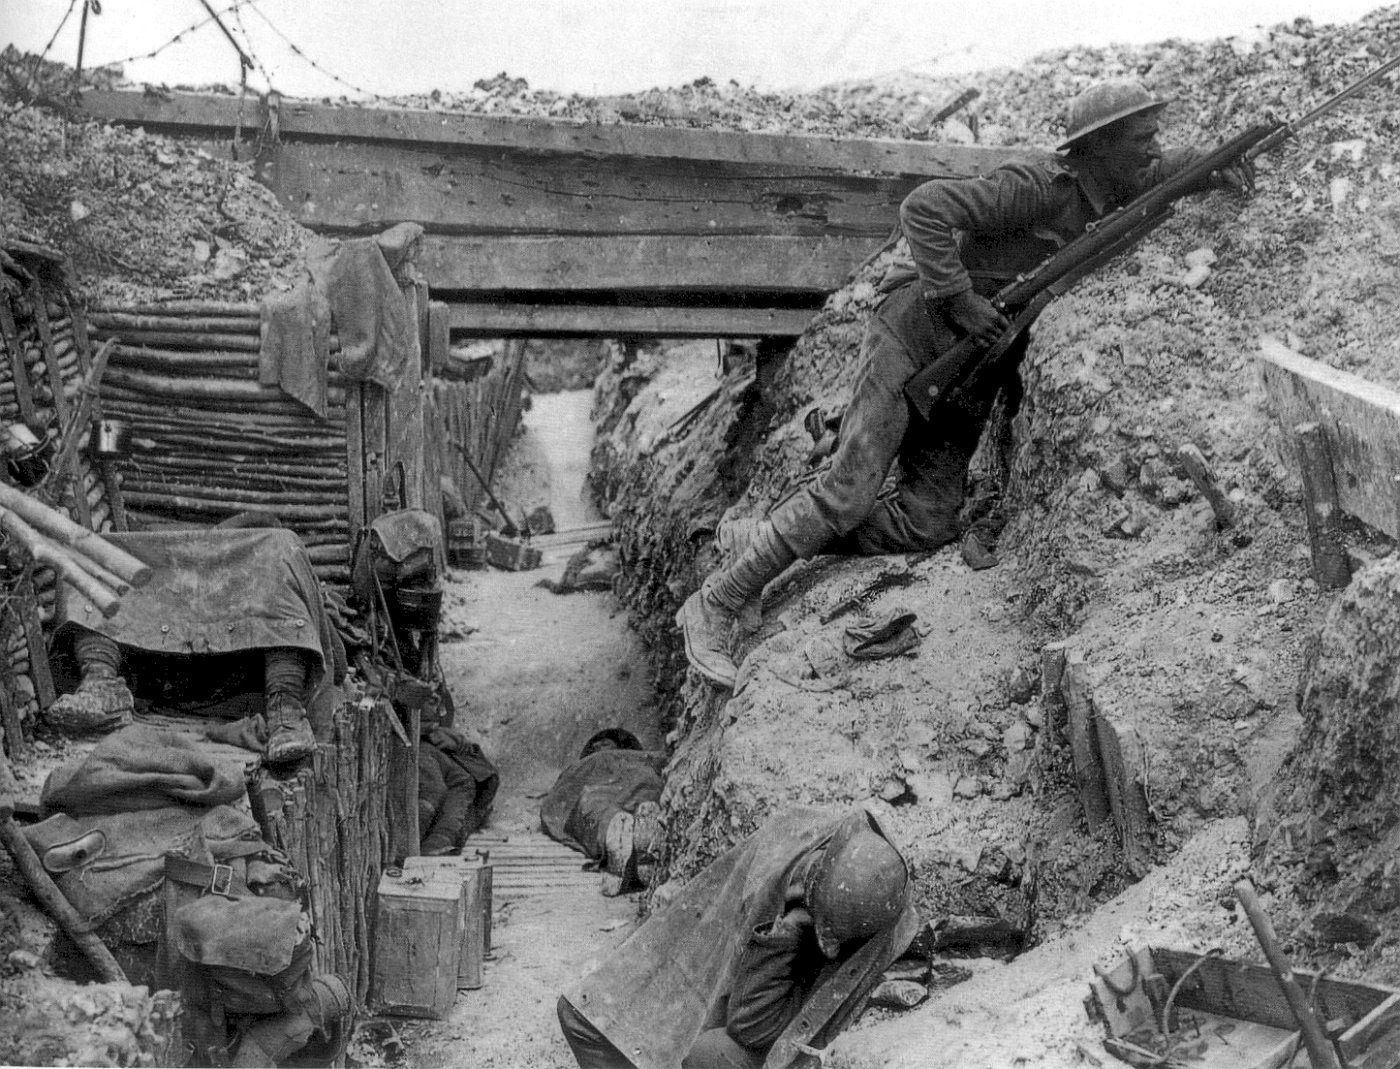 A German trench occupied by British Soldiers near the Albert-Bapaume road at Ovillers-la-Boisselle, July 1916 during the Battle of the Somme. The men are from A Company, 11th Battalion, The Cheshire Regiment.